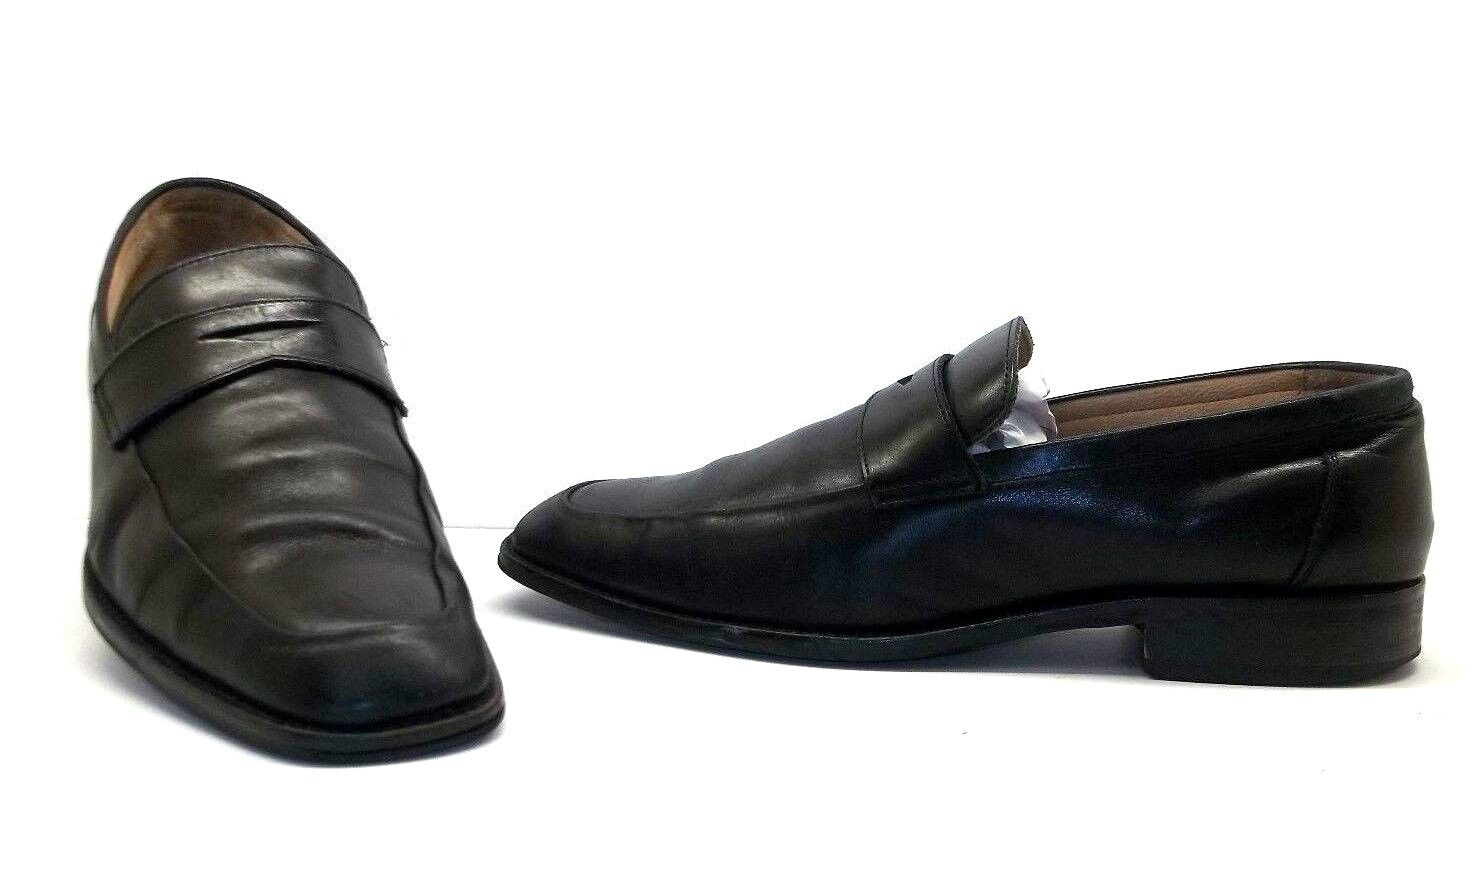 Johnston & Murphy Men's Knowland Penny Loafer Casual Dress shoes Black Size 11 M